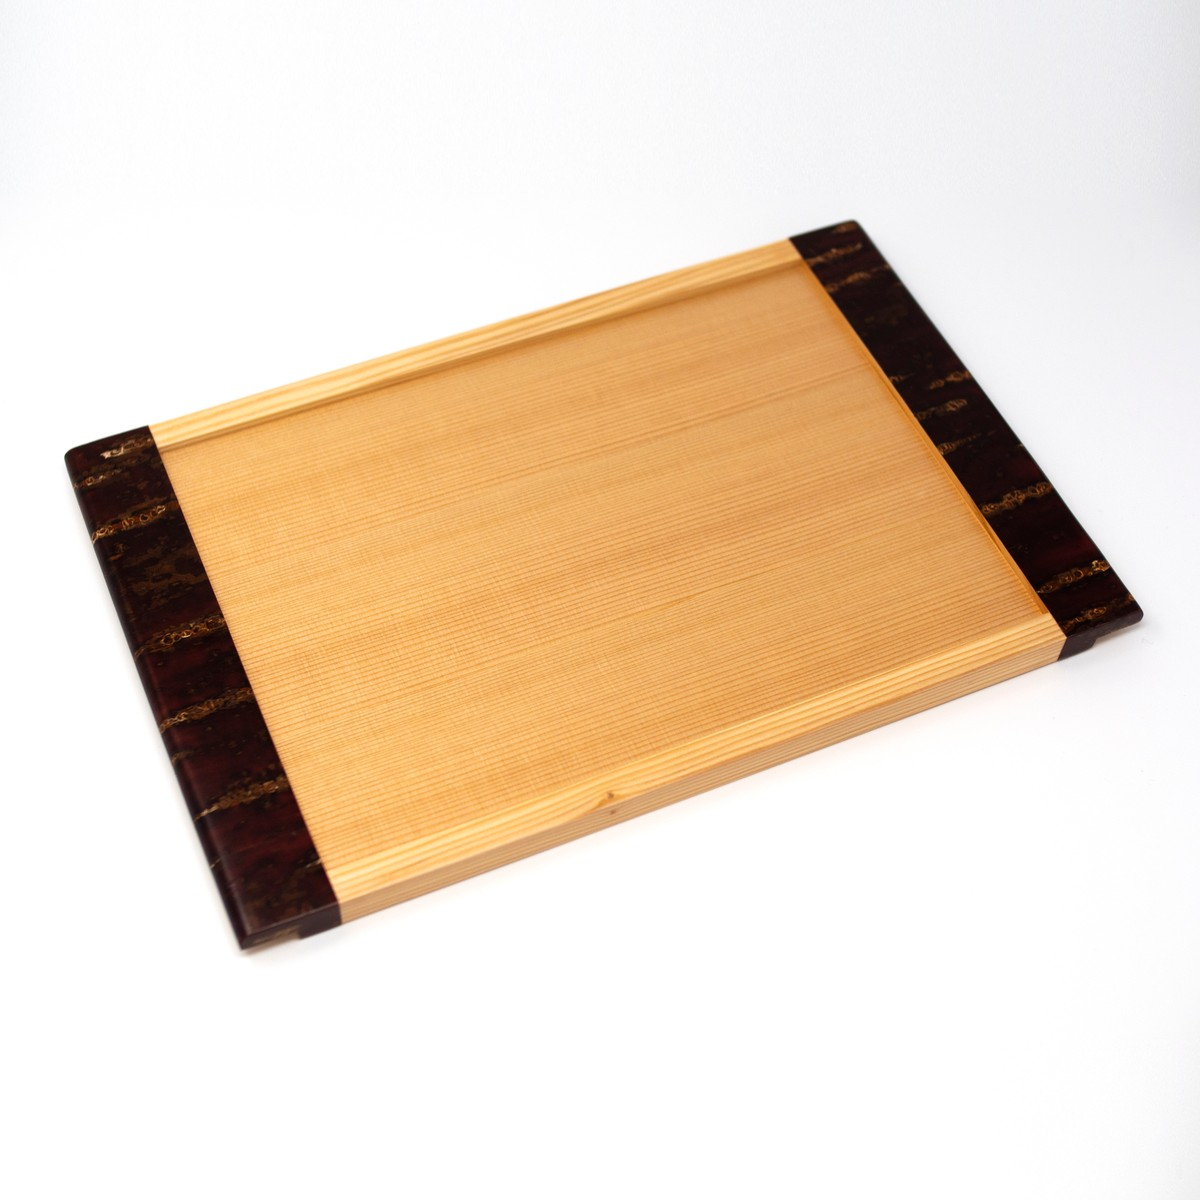 Photo of Chakai Serving Tray